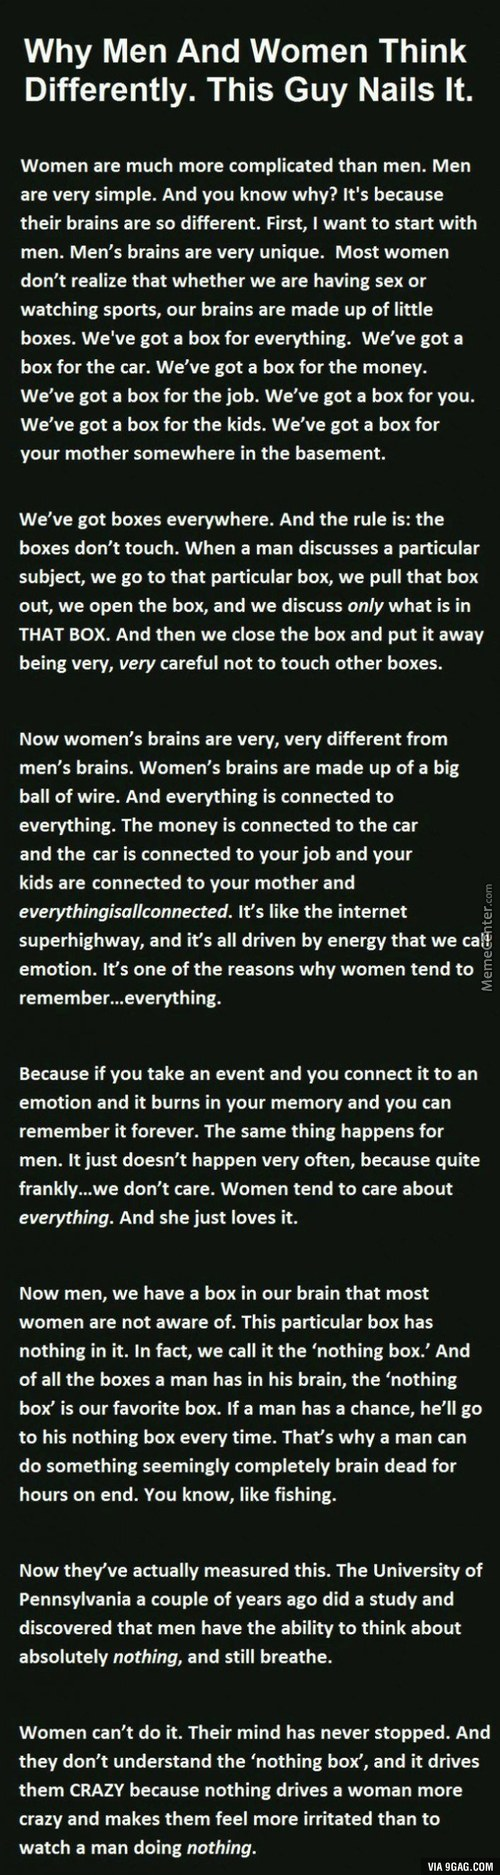 Why Do Men And Women Think Differently? This Explanation Nails It.